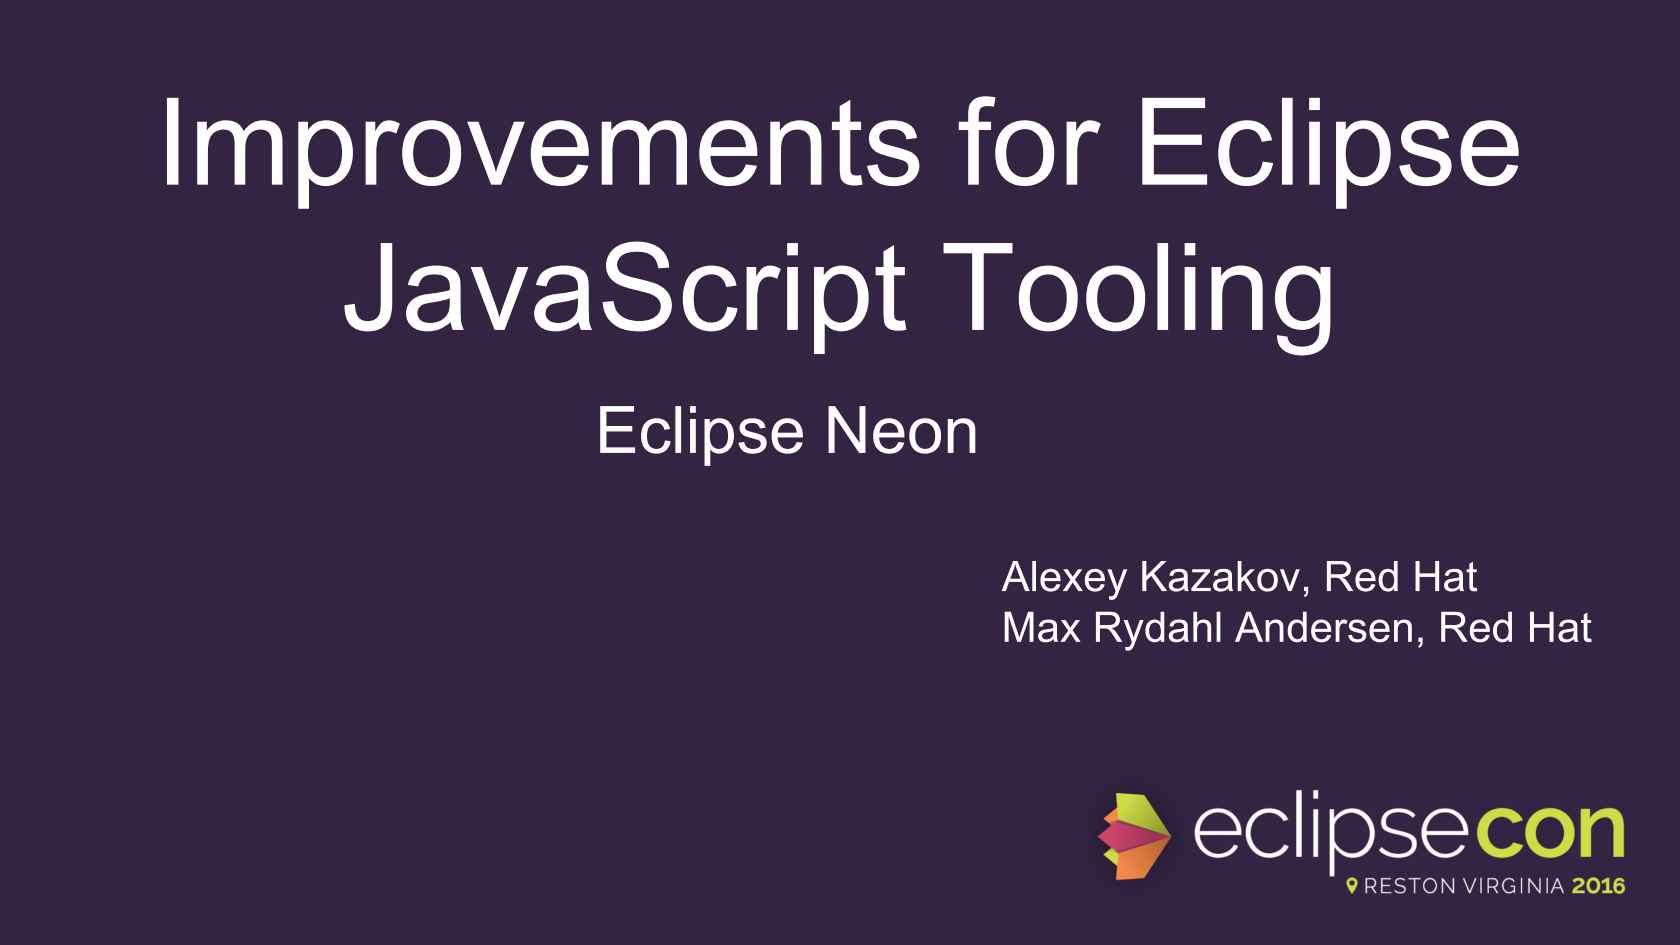 Improvements for Eclipse JavaScript Tooling